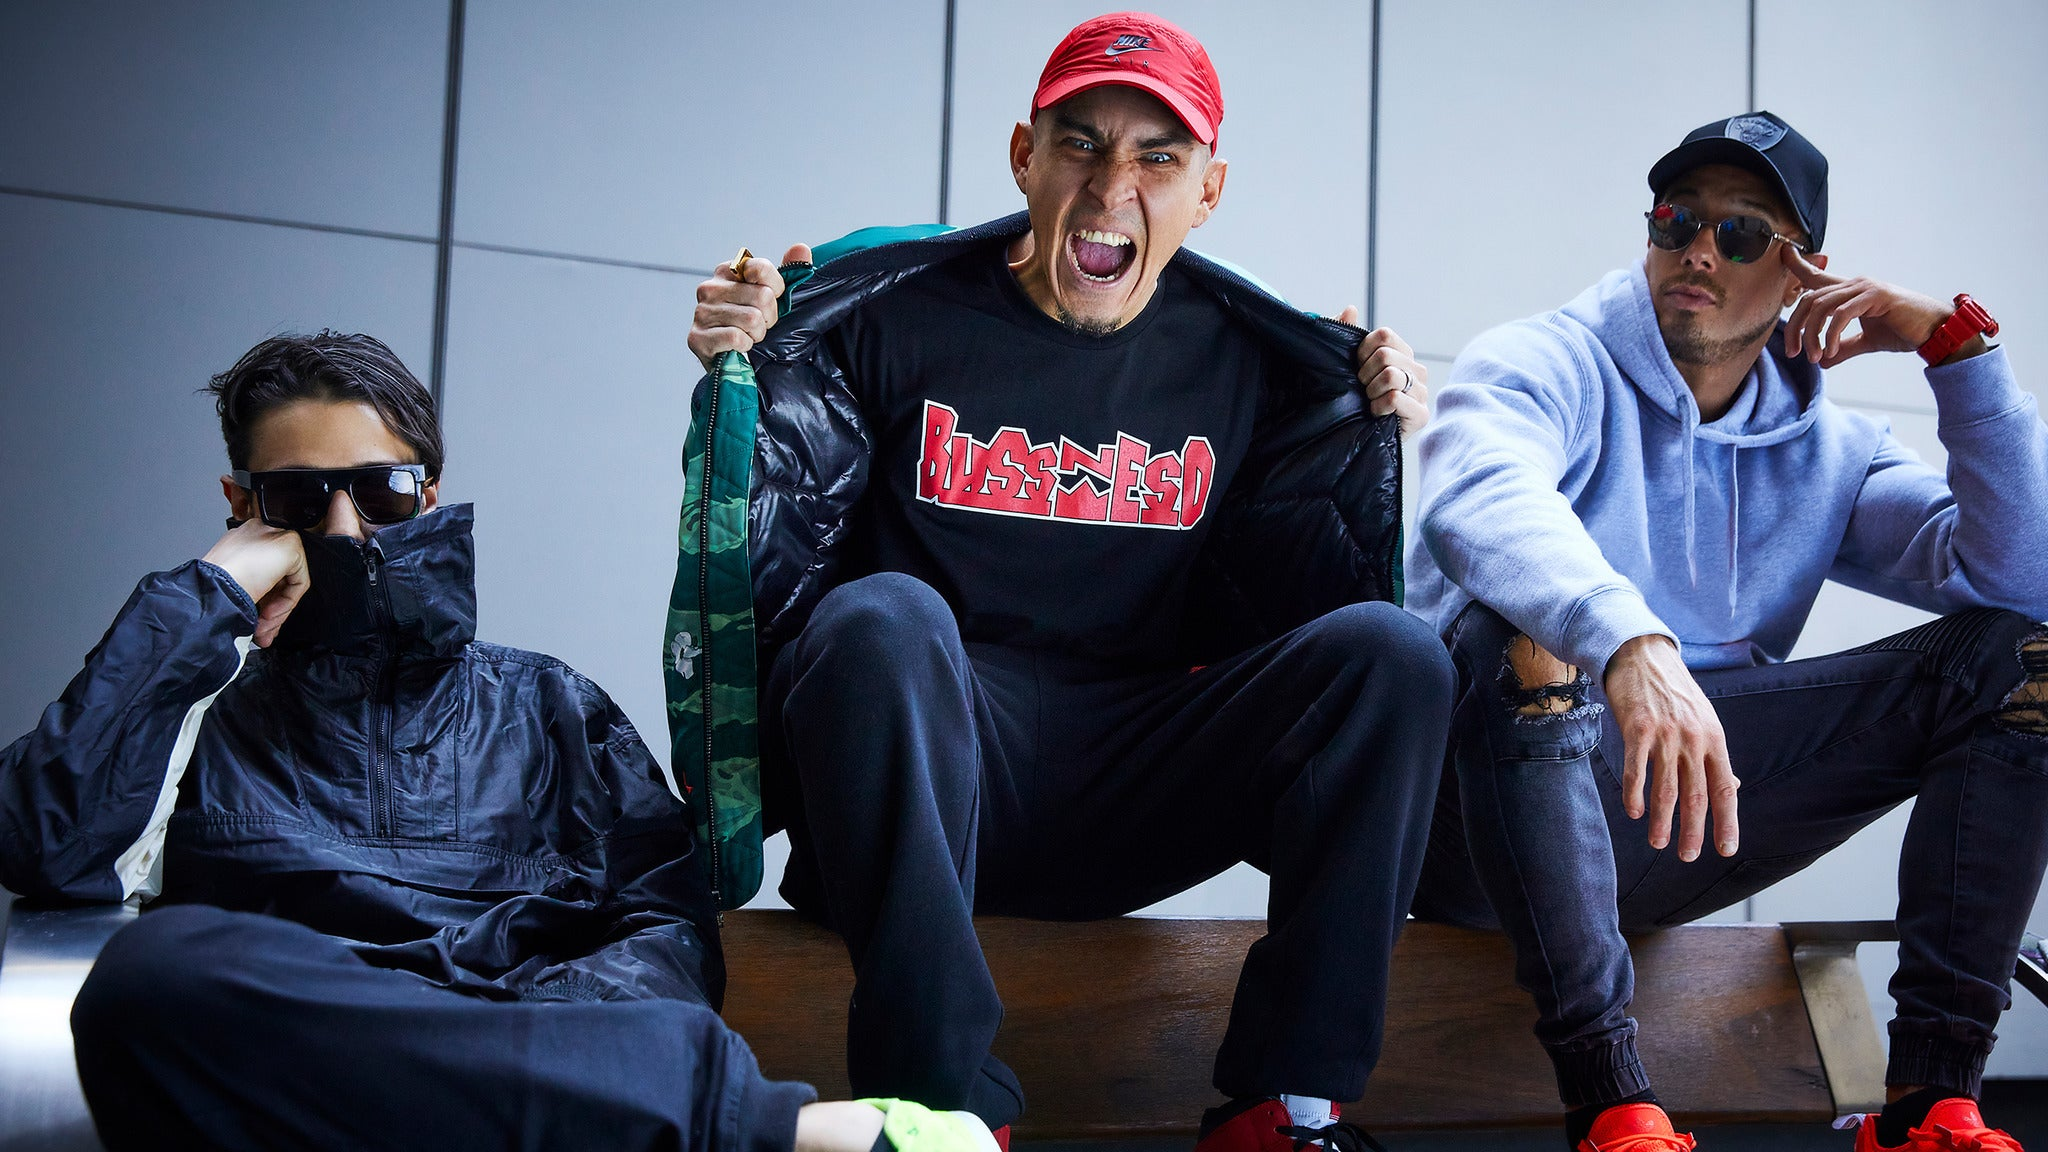 Image used with permission from Ticketmaster | BLISS N ESO - THE SUN TOUR (Mackay) tickets